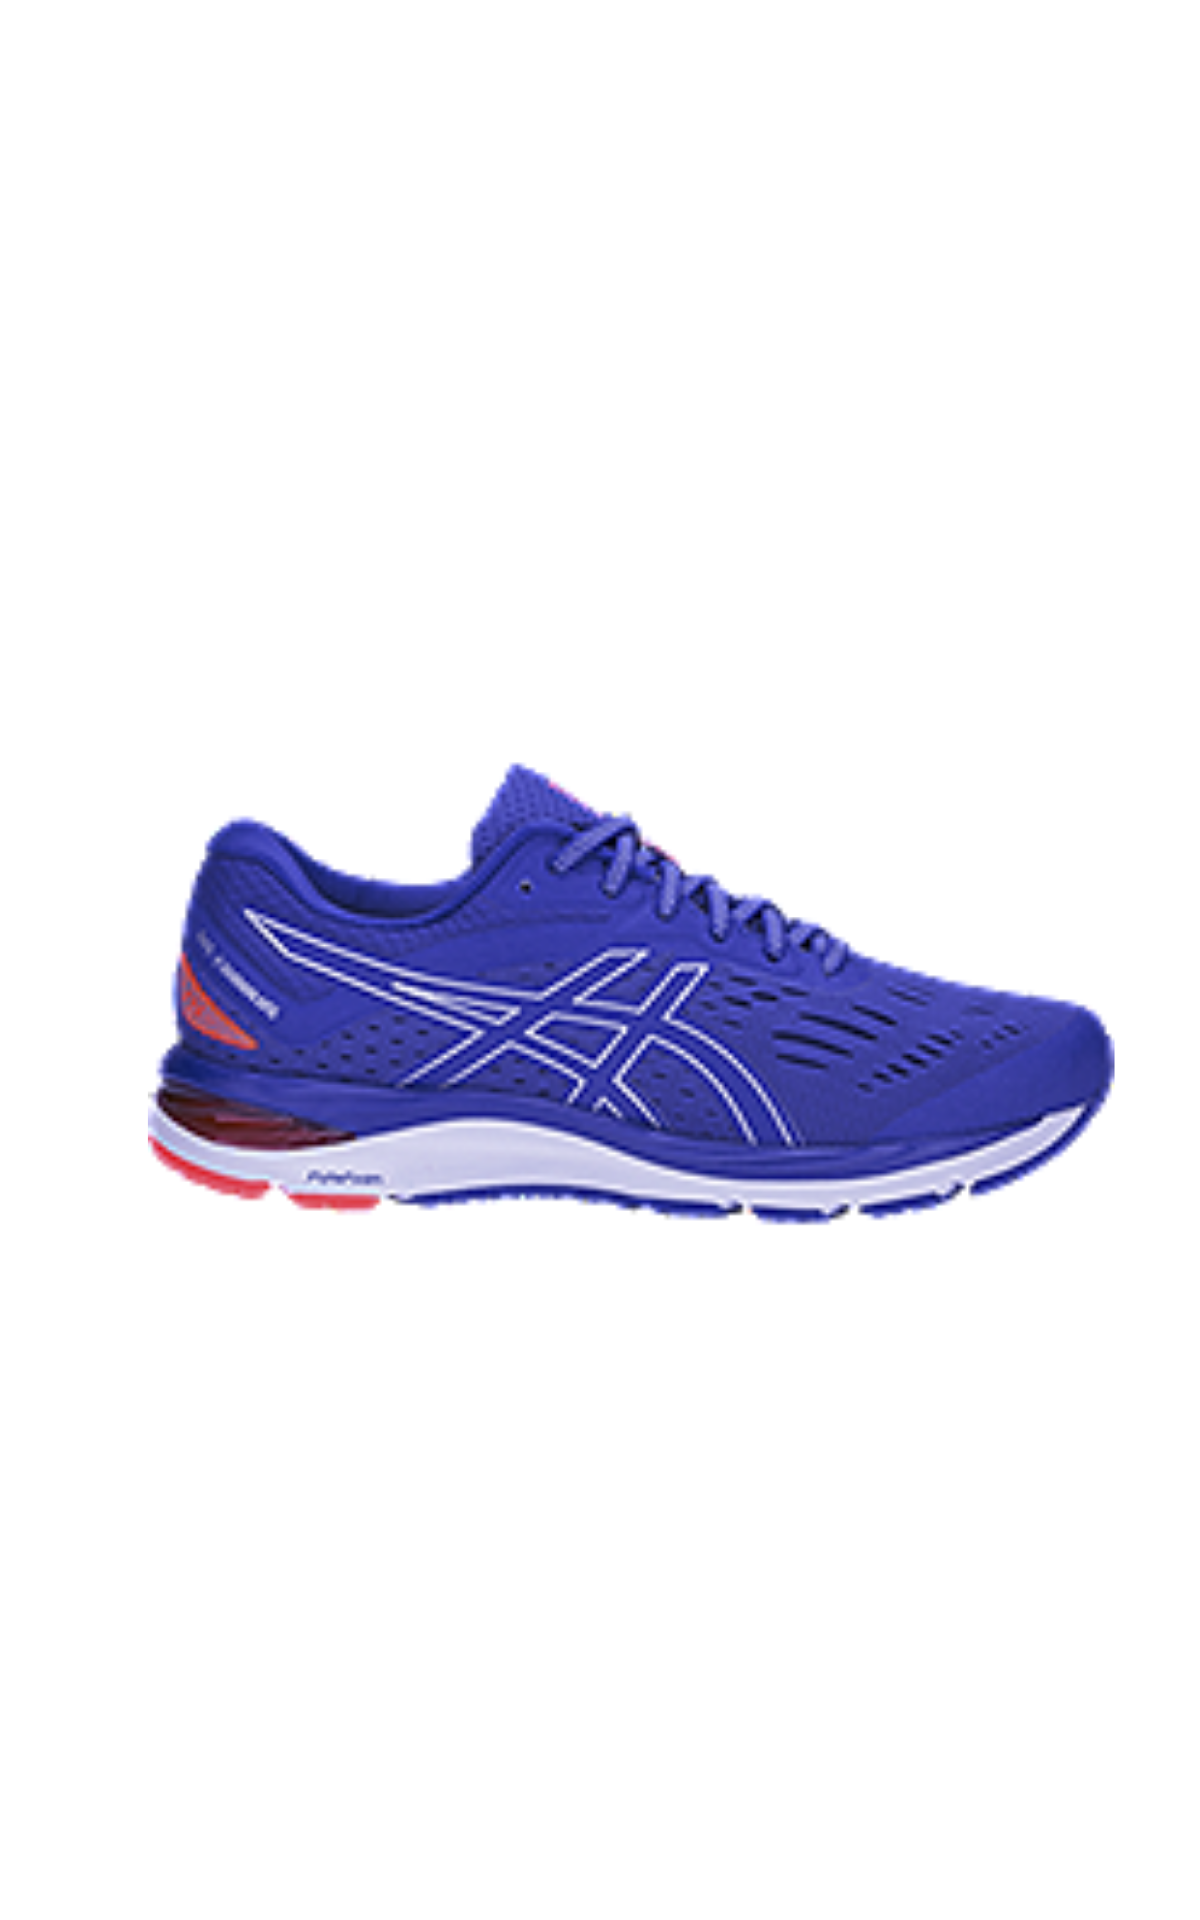 ASICS Gel Cumulus 20 at The Bicester Village Shopping Collection